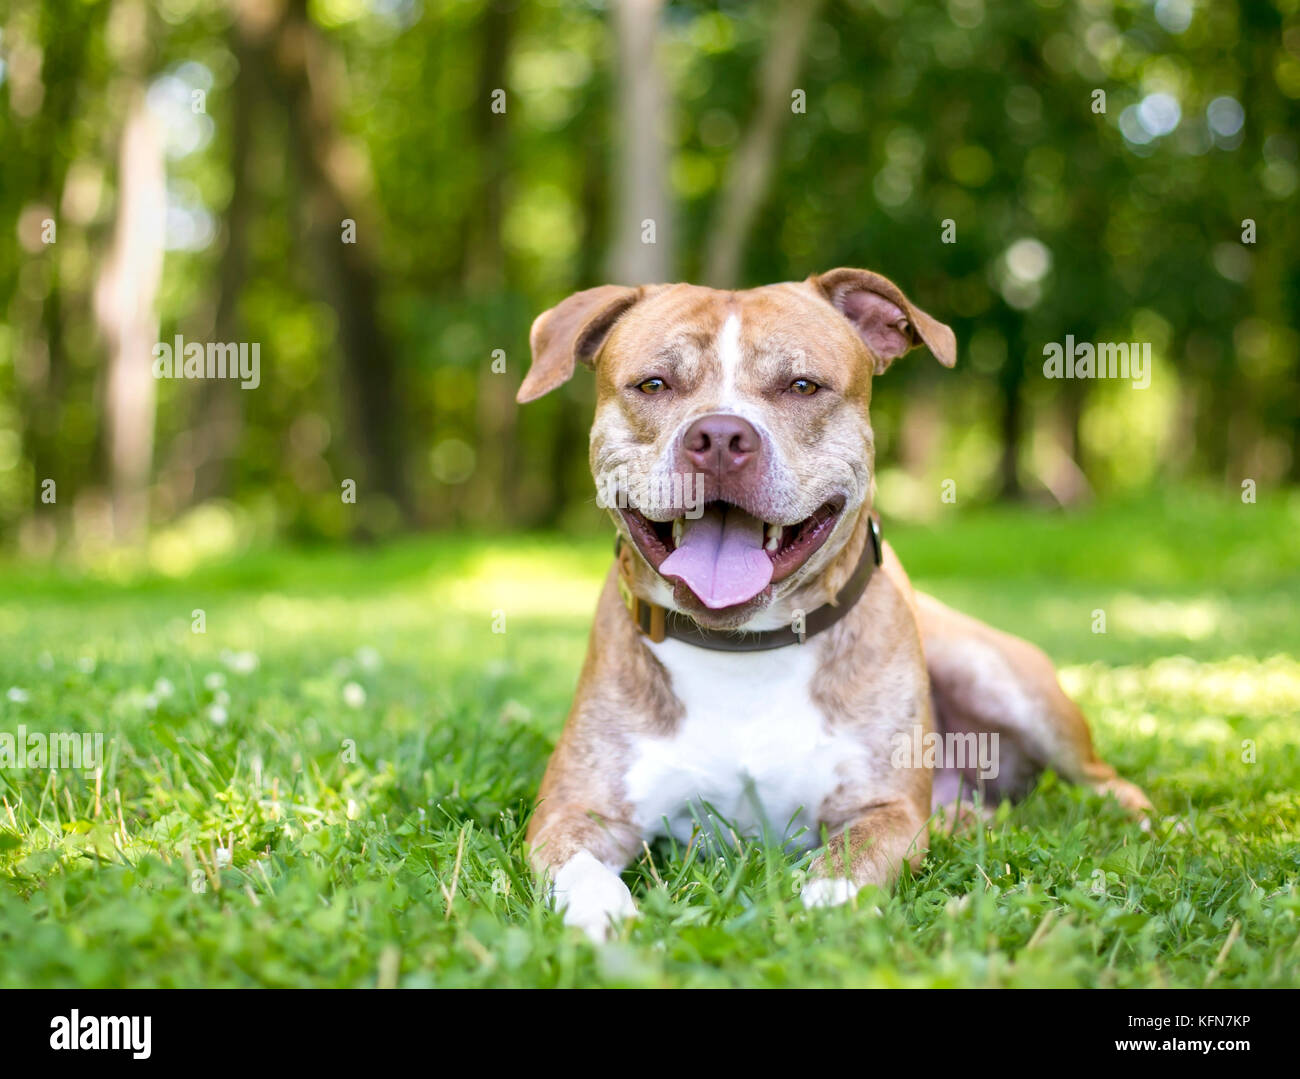 A smiling mixed breed pit bull type dog lying in the grass - Stock Image